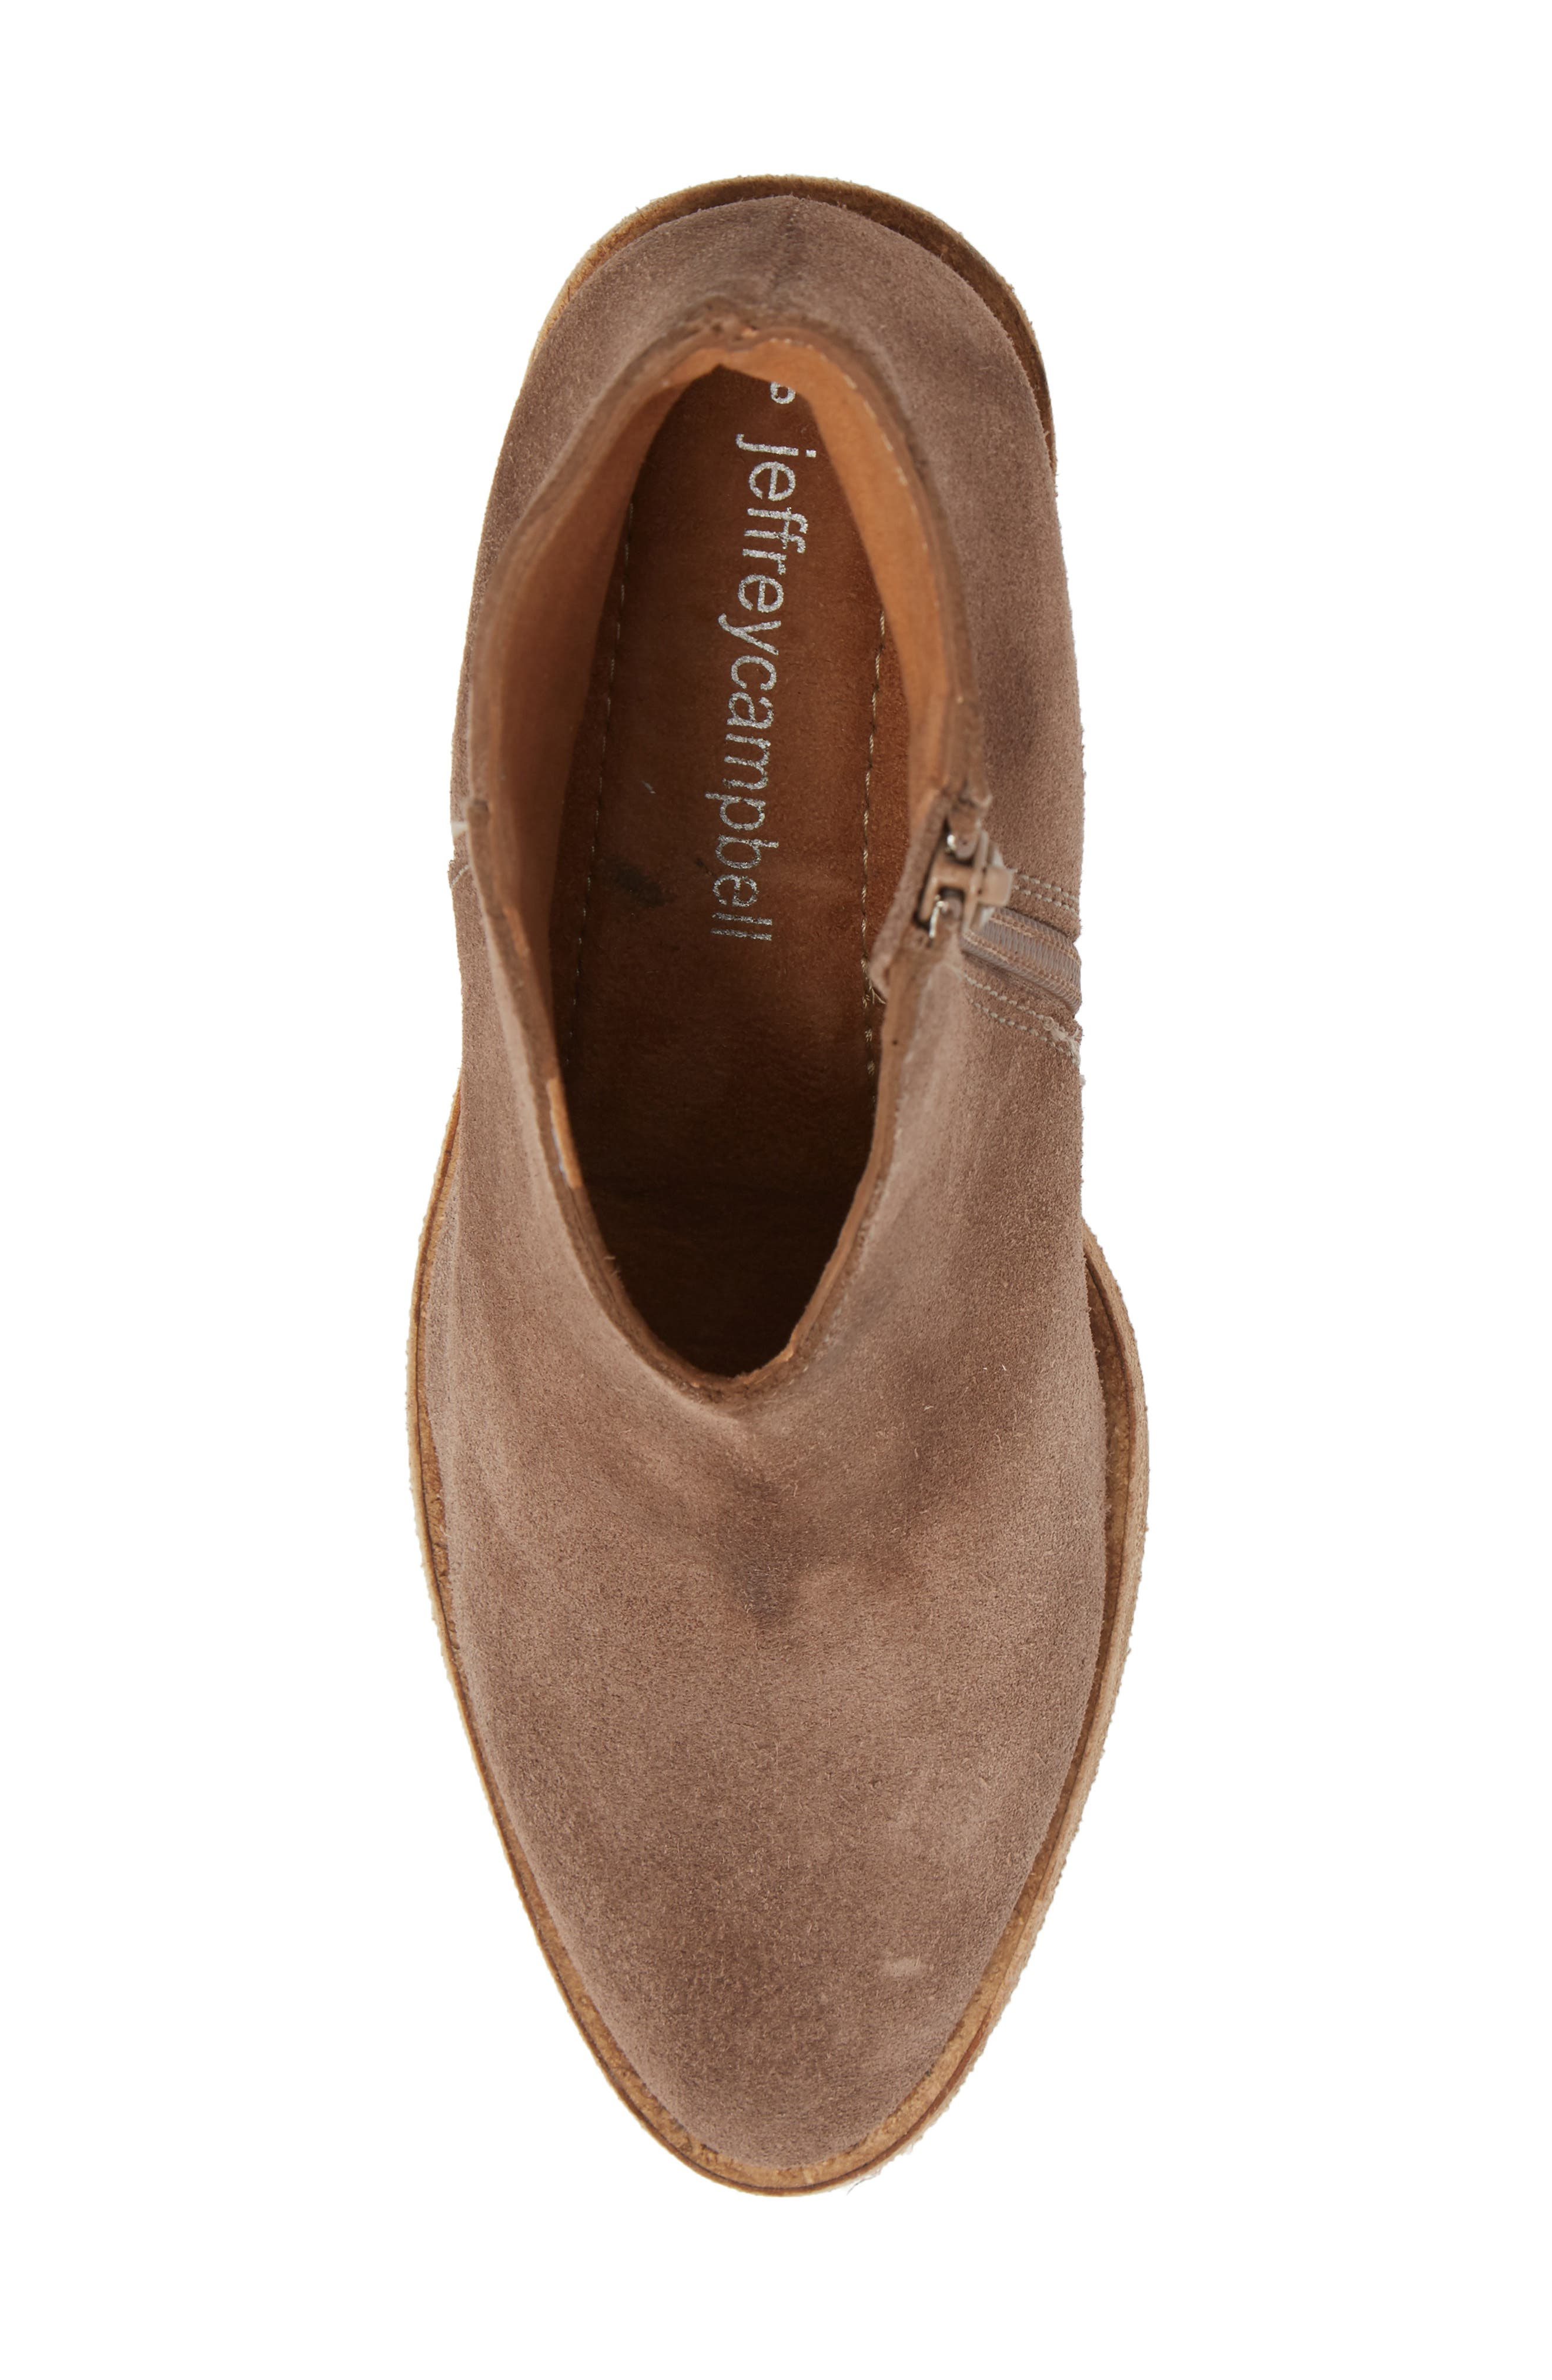 Kamet Bootie,                             Alternate thumbnail 5, color,                             Taupe Oiled Suede